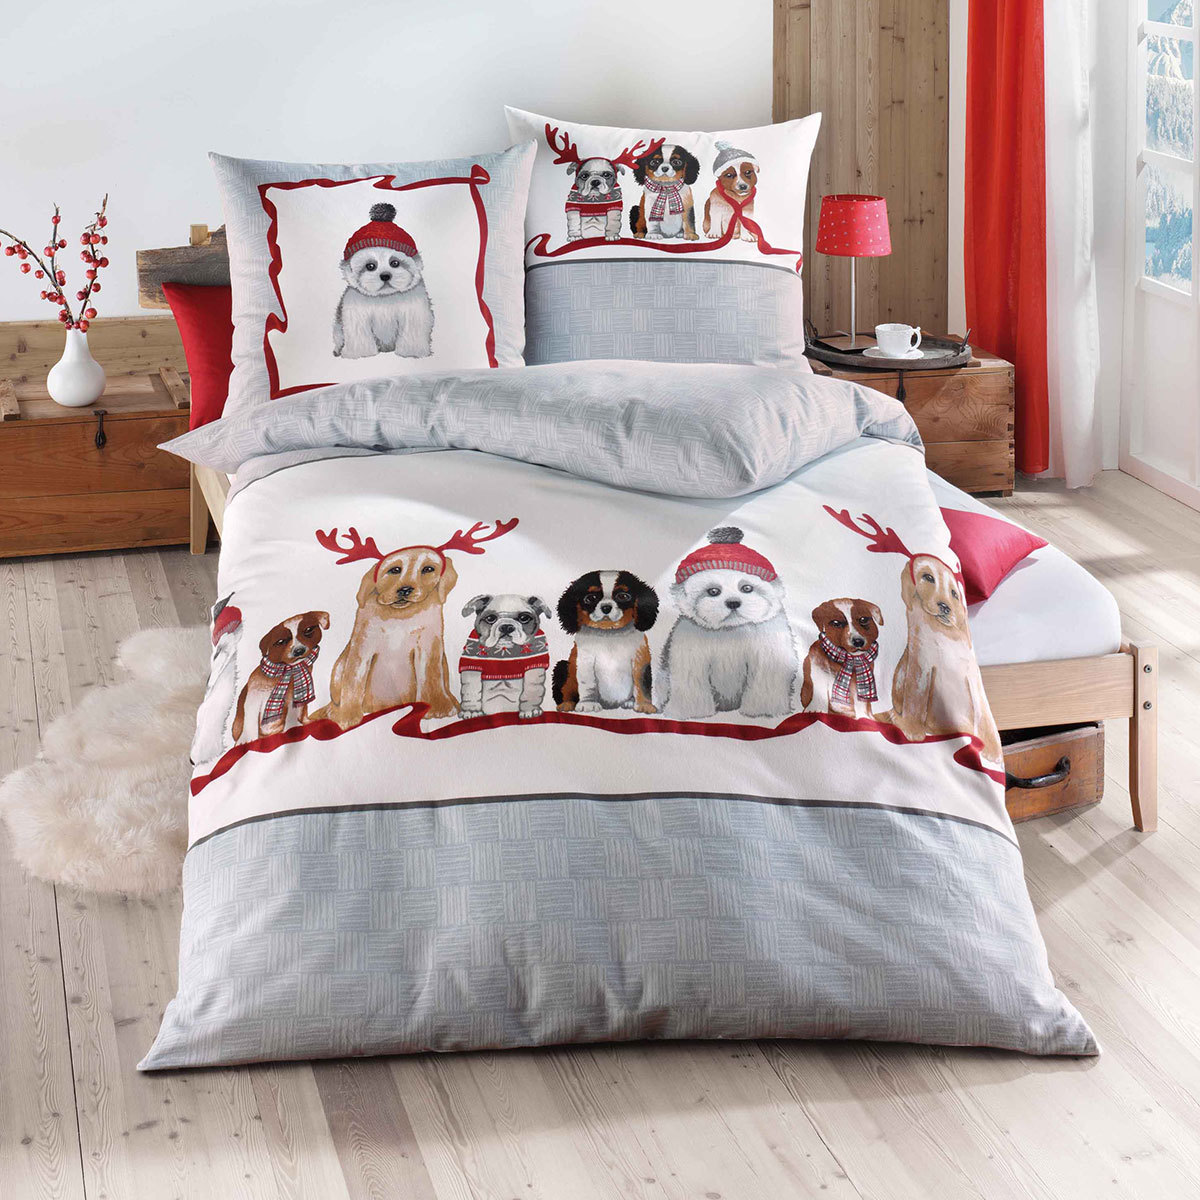 traumschlaf biber bettw sche dogs g nstig online kaufen. Black Bedroom Furniture Sets. Home Design Ideas